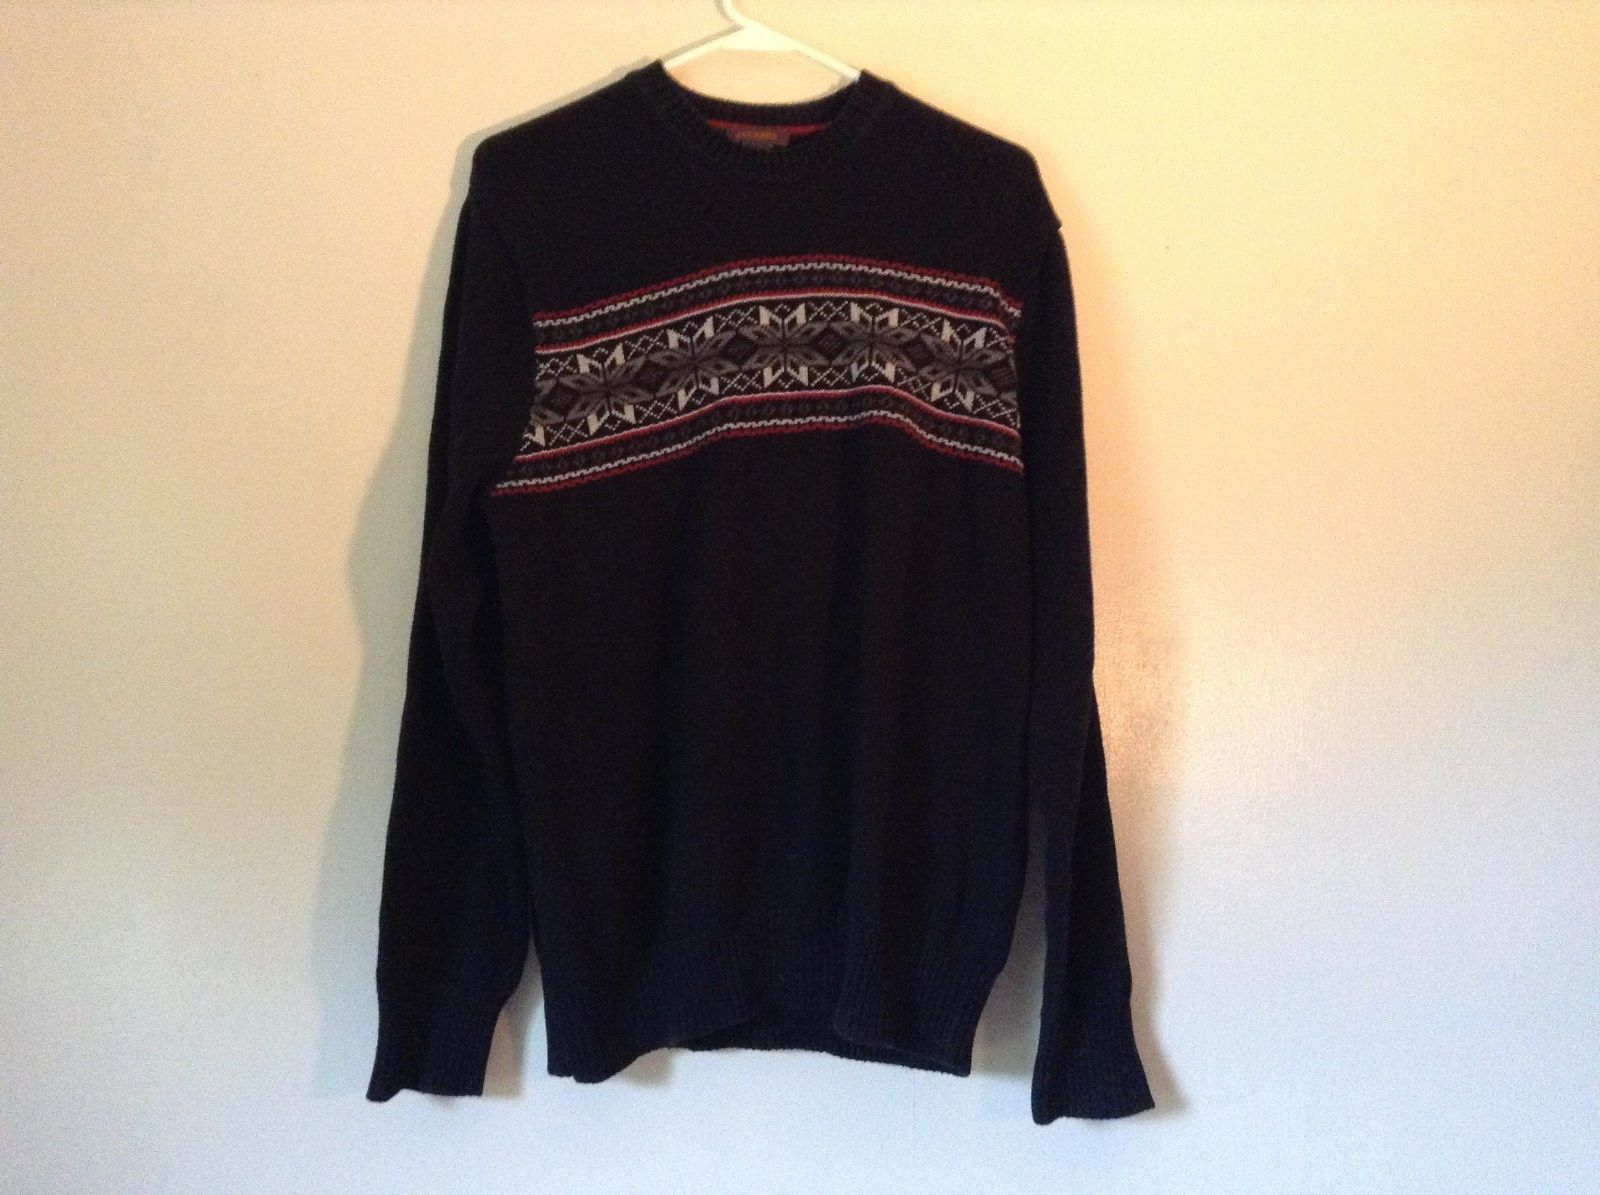 Dockers Black with Design on Front Long Sleeve Sweater 100 Percent Cotton Size L